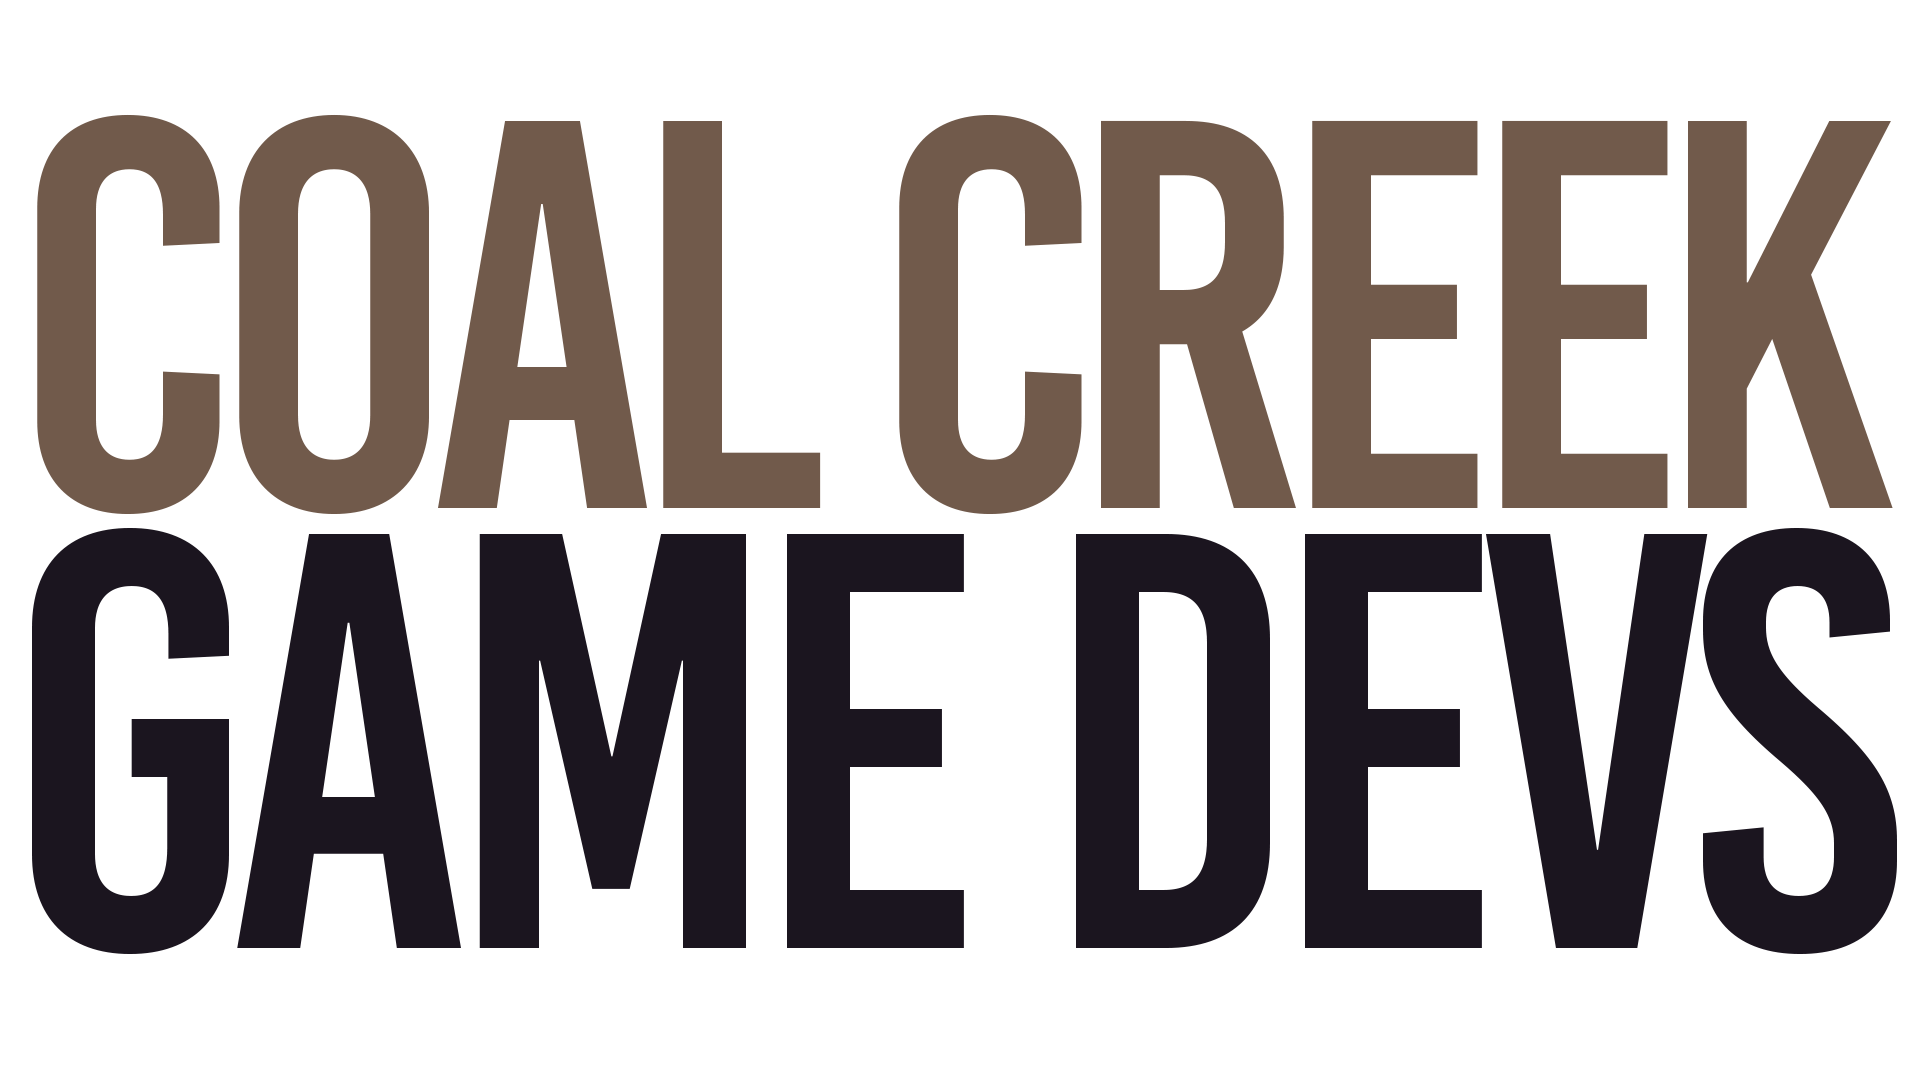 Coal Creek Game Devs (CCGD)